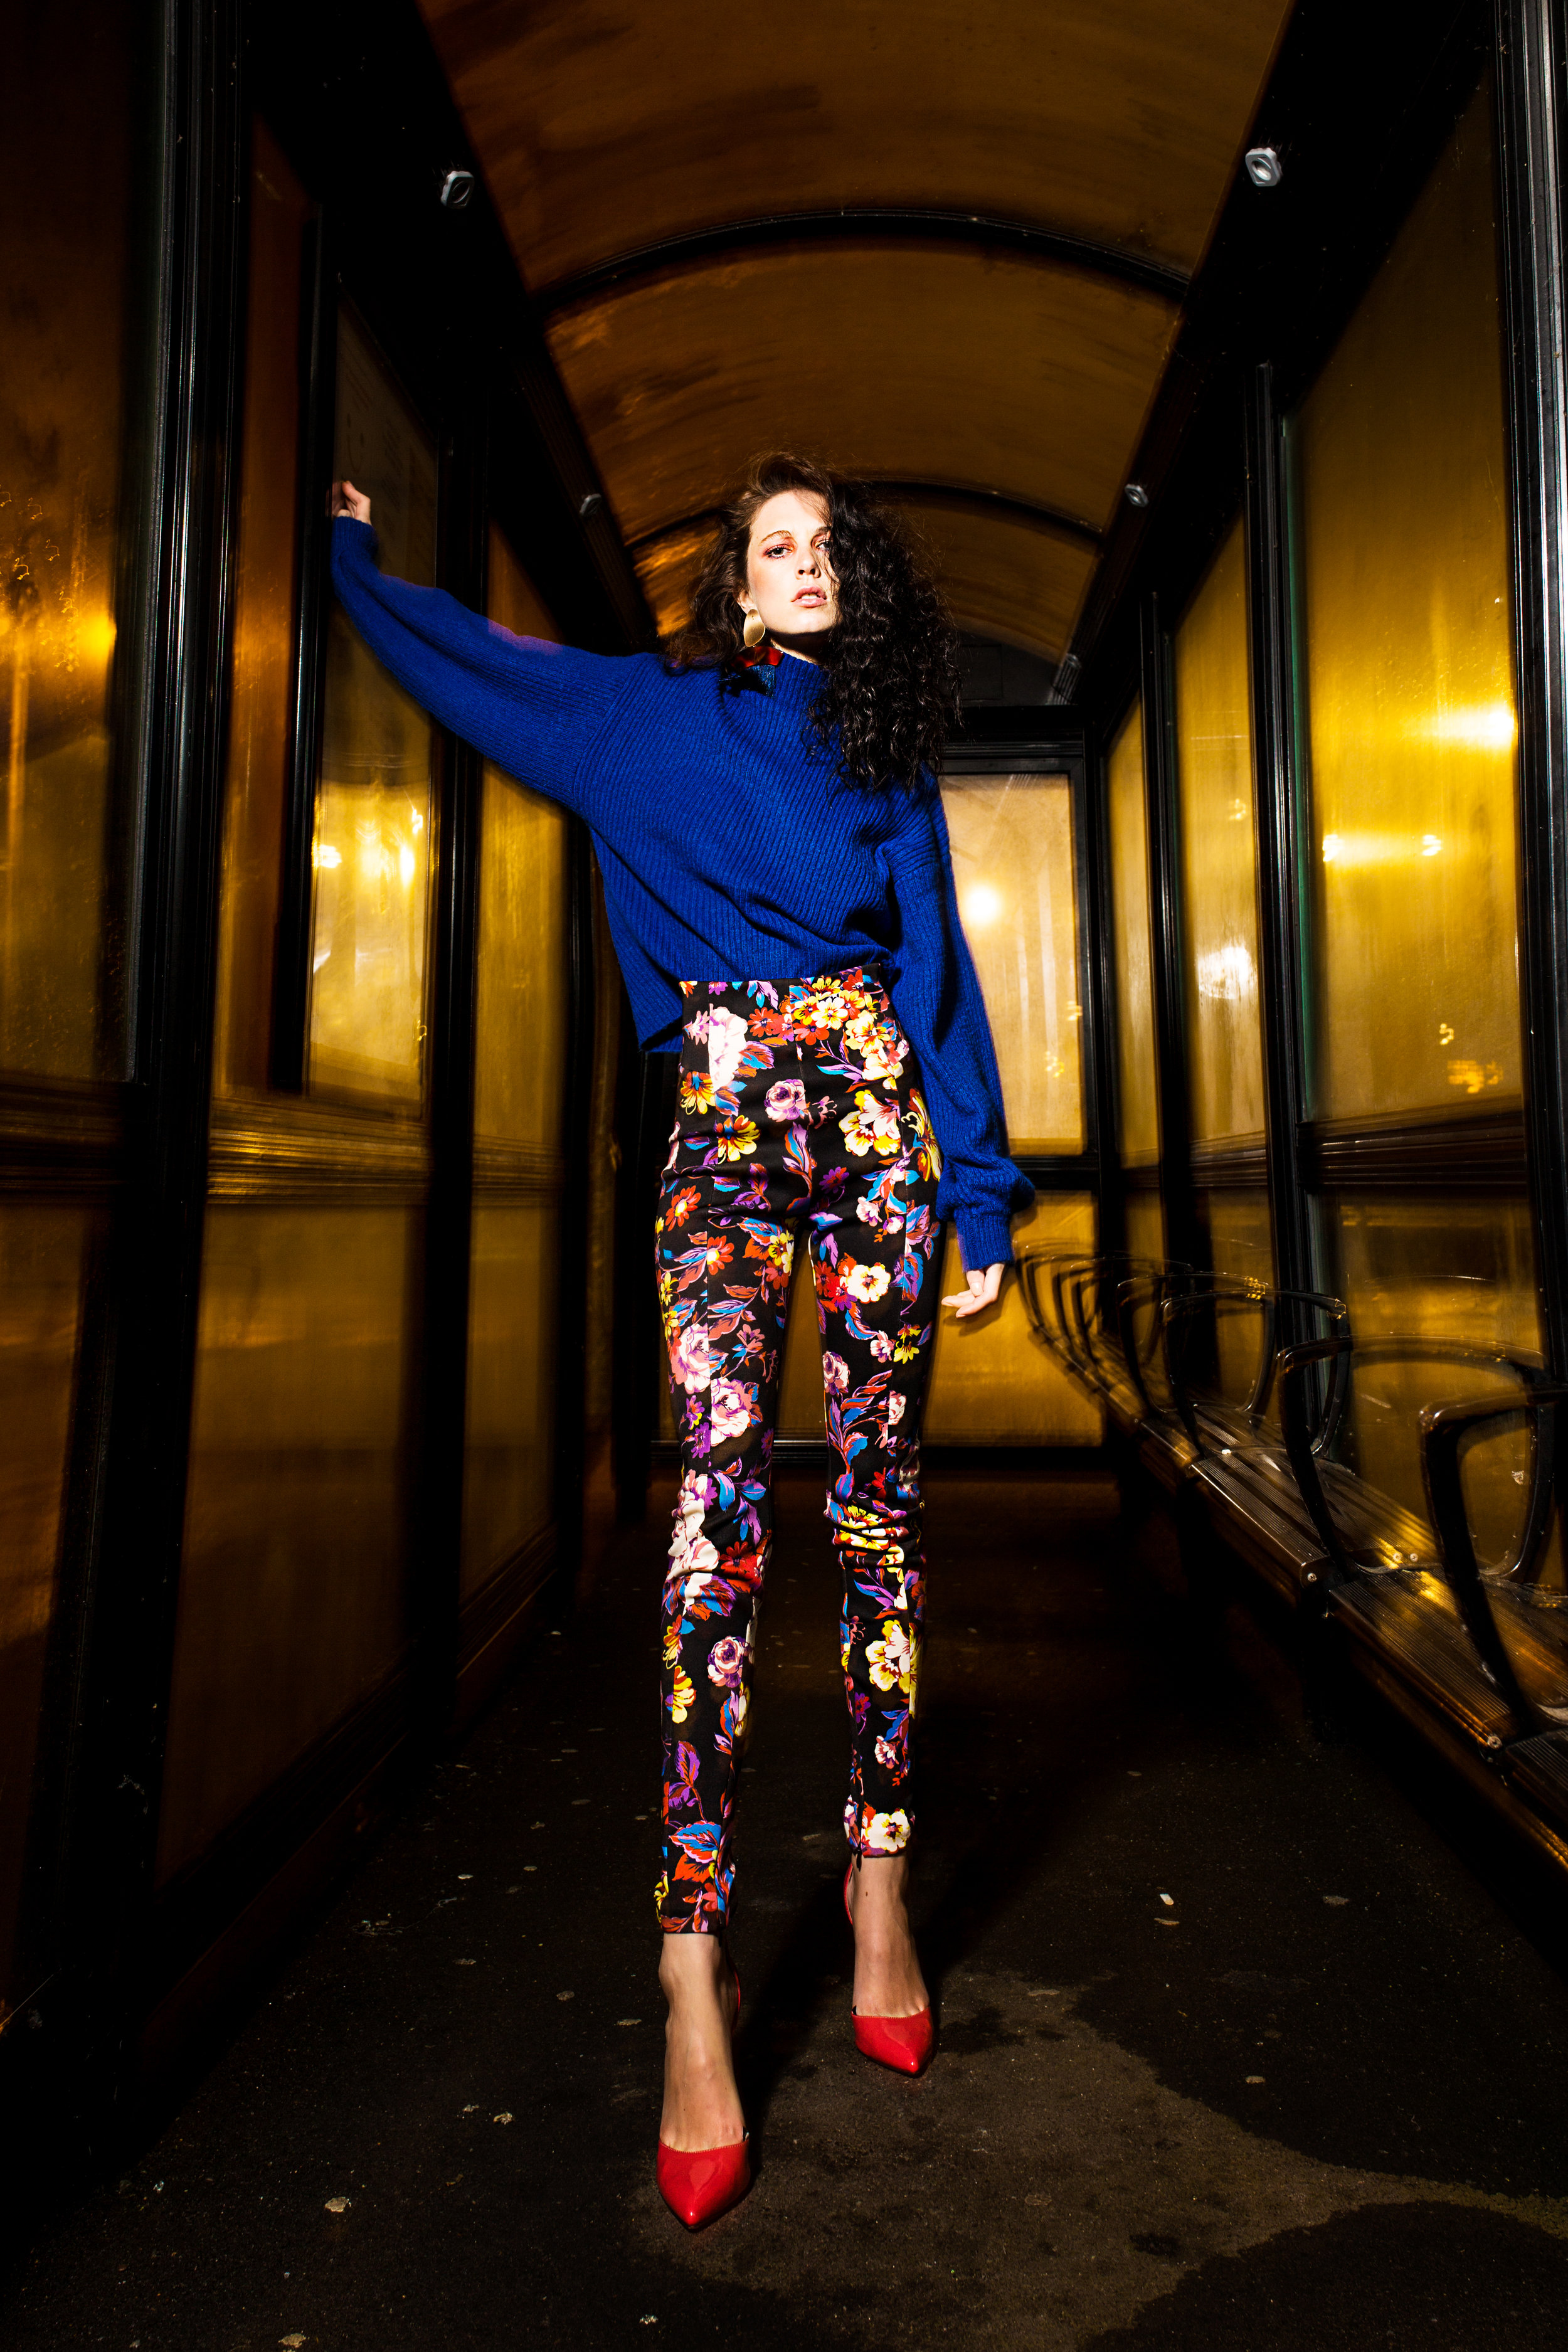 Blue jumper - New Look @newlookfashion Patterned trousers - Zara @zara Pink shoes - Office - @officeshoes